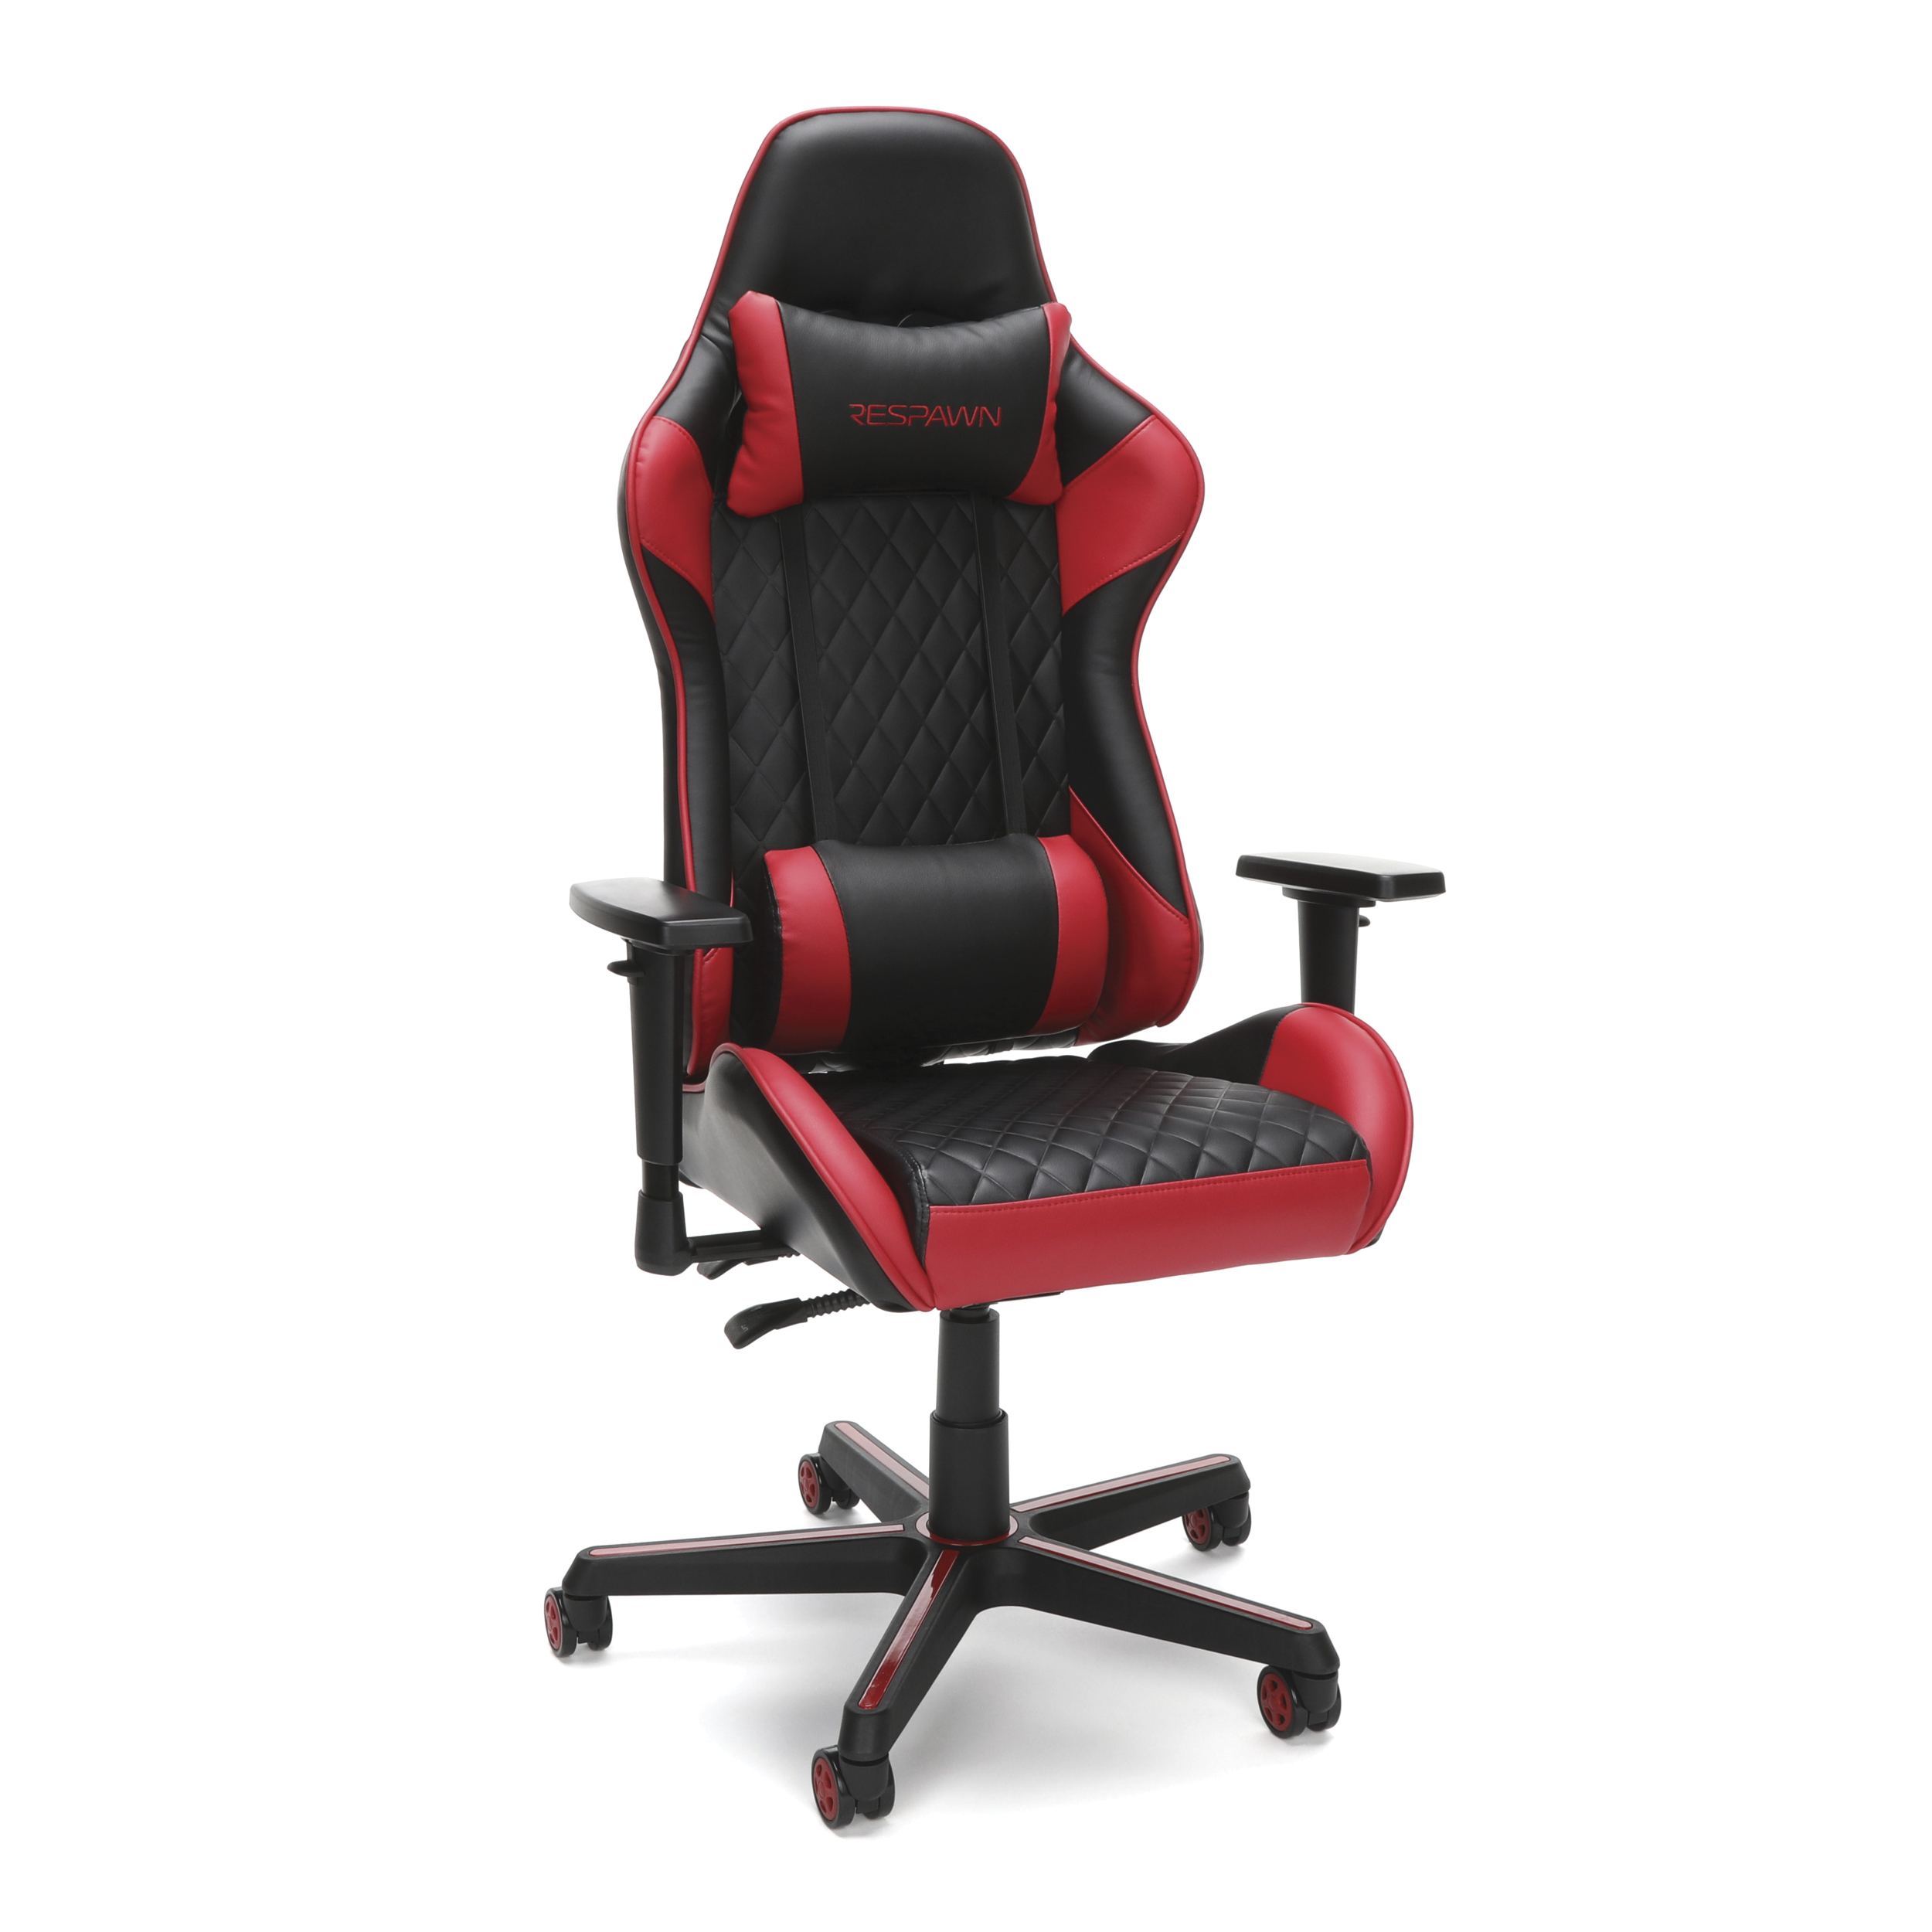 Excellent Respawn 100 Racing Style Gaming Chair Reclining Ergonomic Leather Chair Office Or Gaming Chair Blue Rsp 100 Gmtry Best Dining Table And Chair Ideas Images Gmtryco